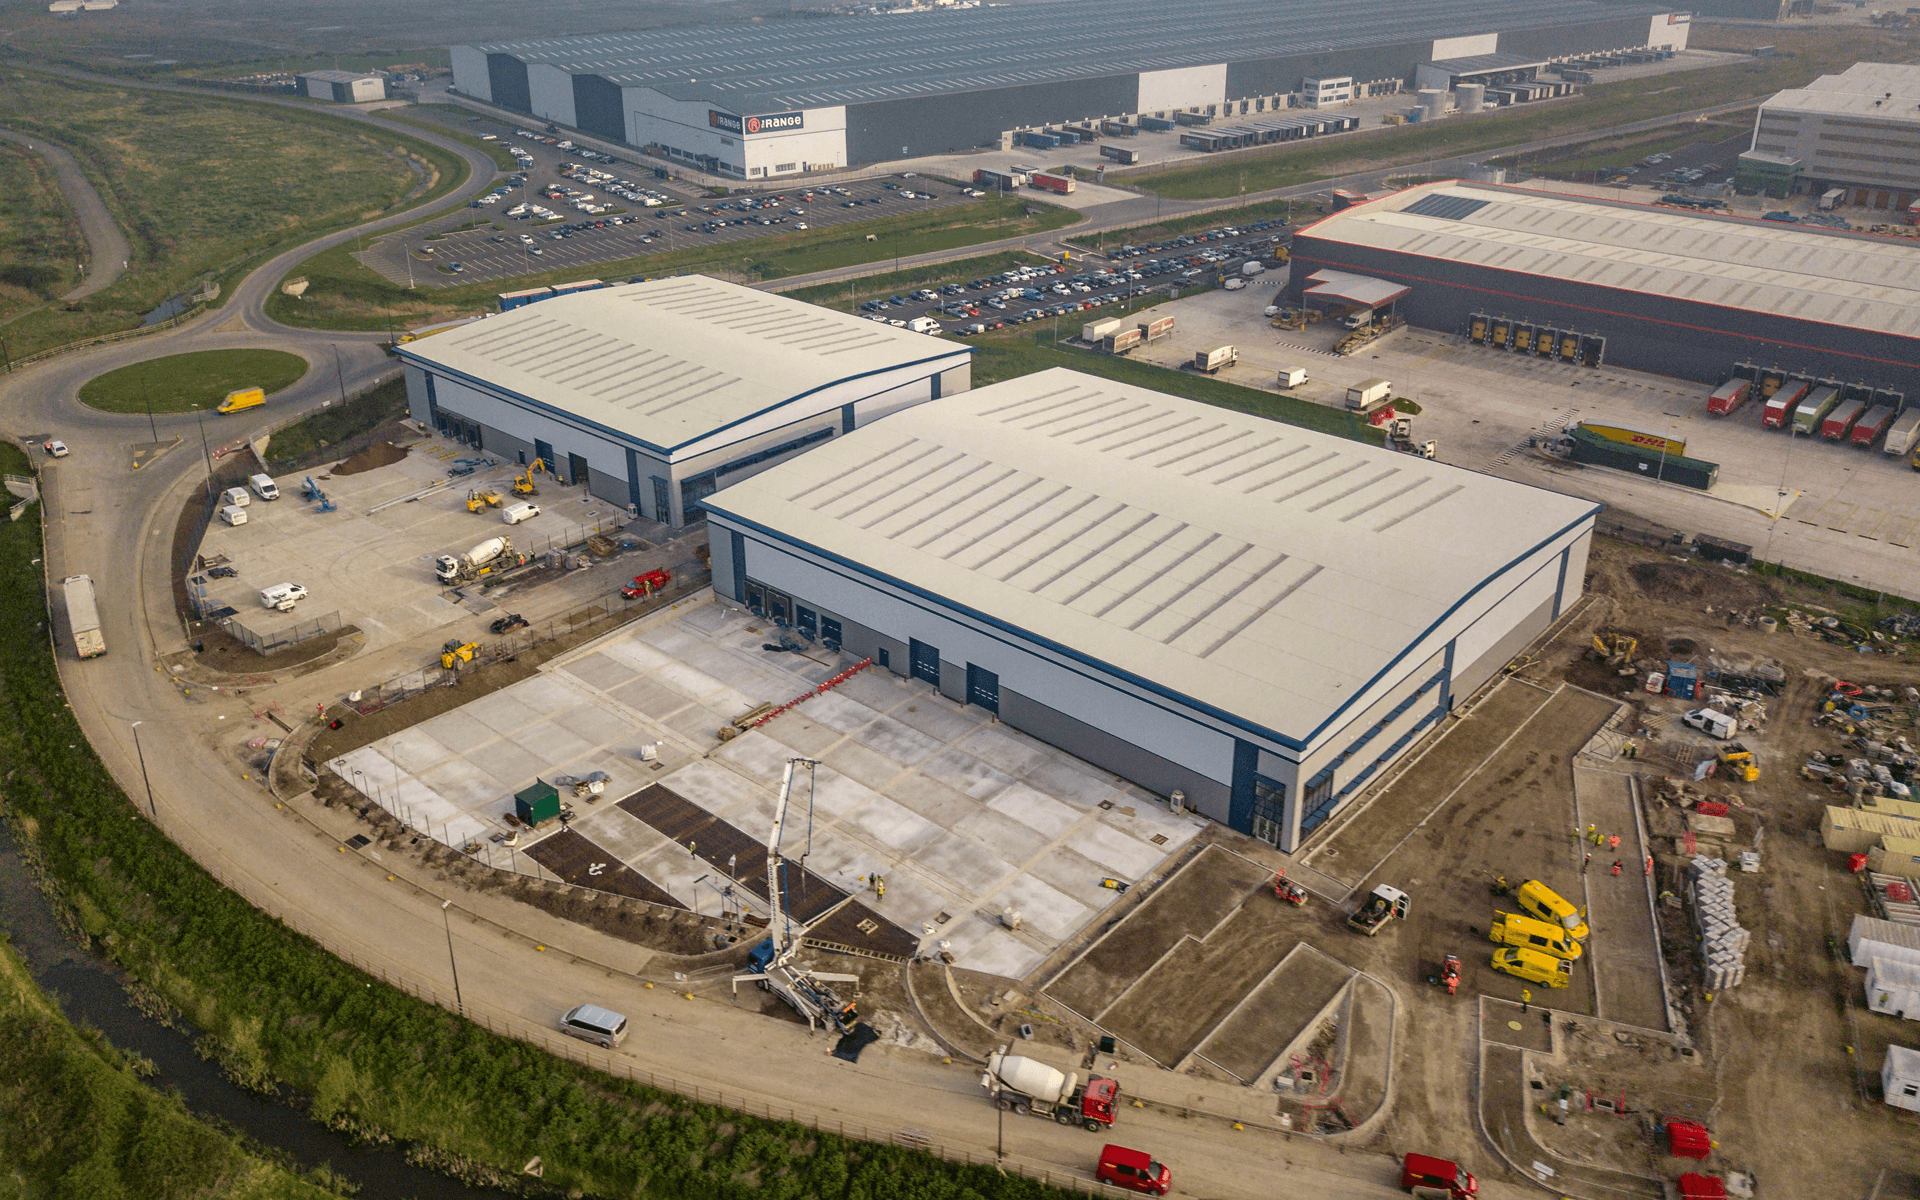 """""""Mavic Pro"""" aerial drone photo of near completion of a """"VINCI"""" contruction site of several warehouses in Avonmouth, Bristol"""